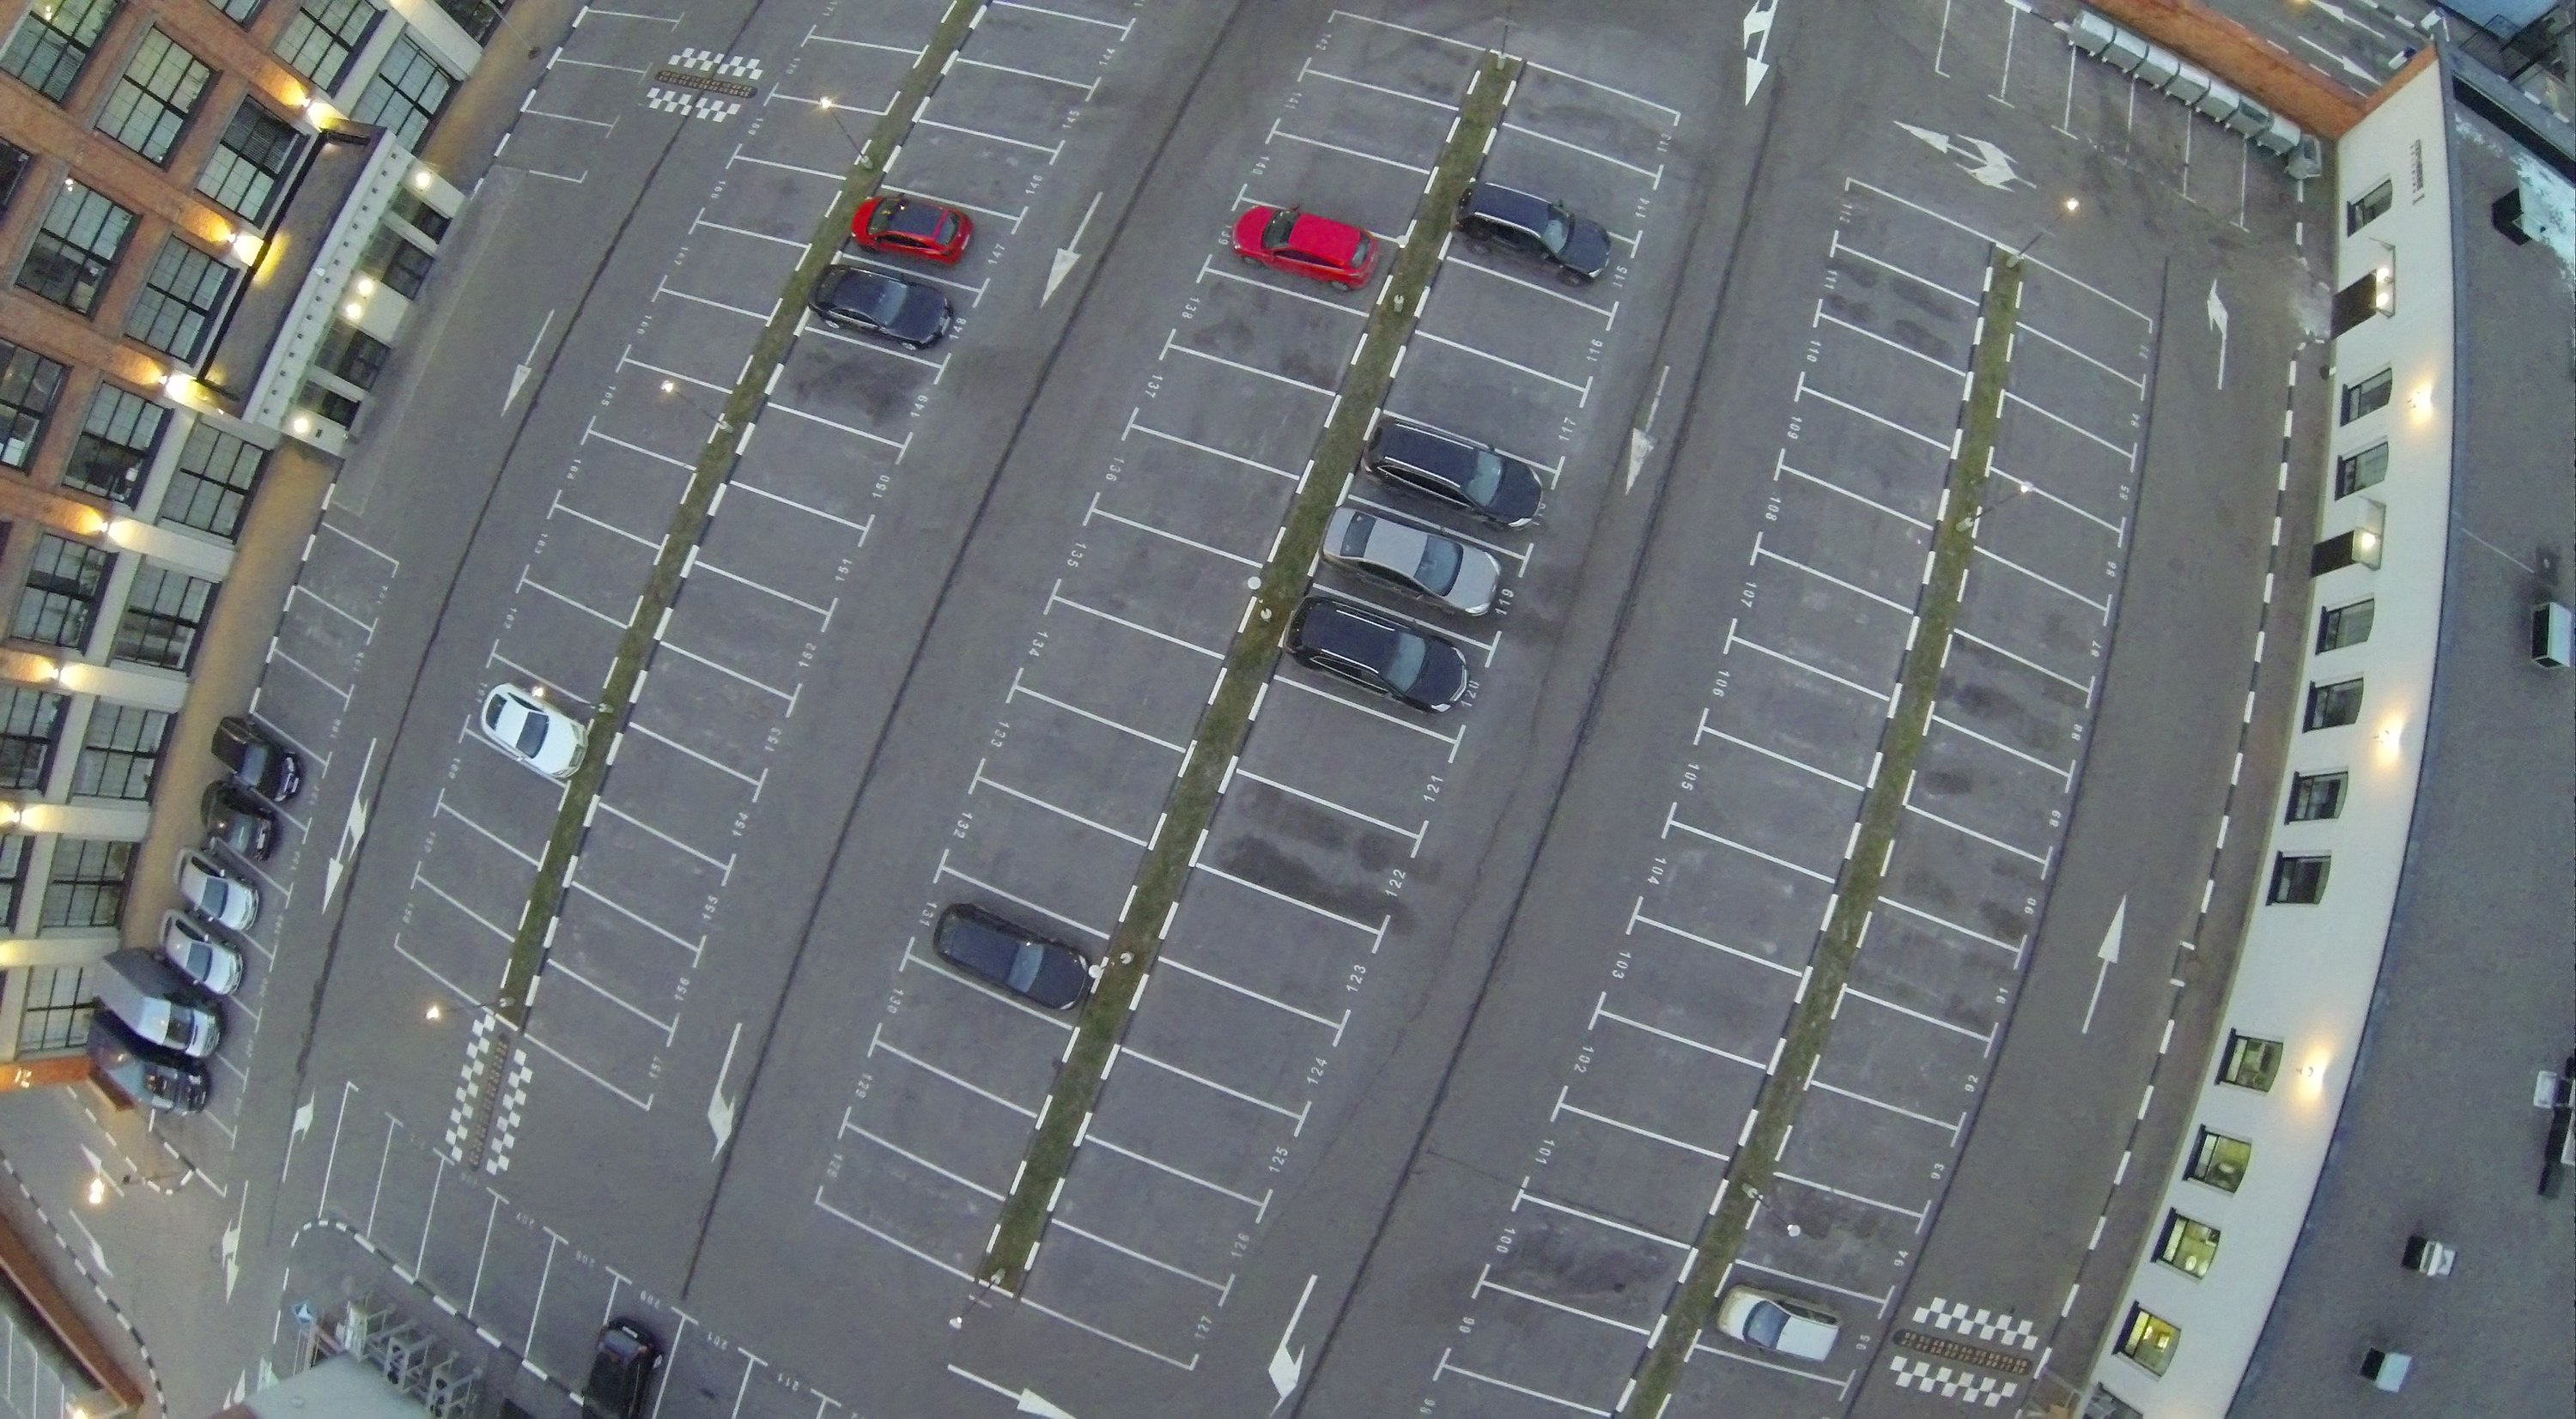 Aerial view of parking lot with few vehicles